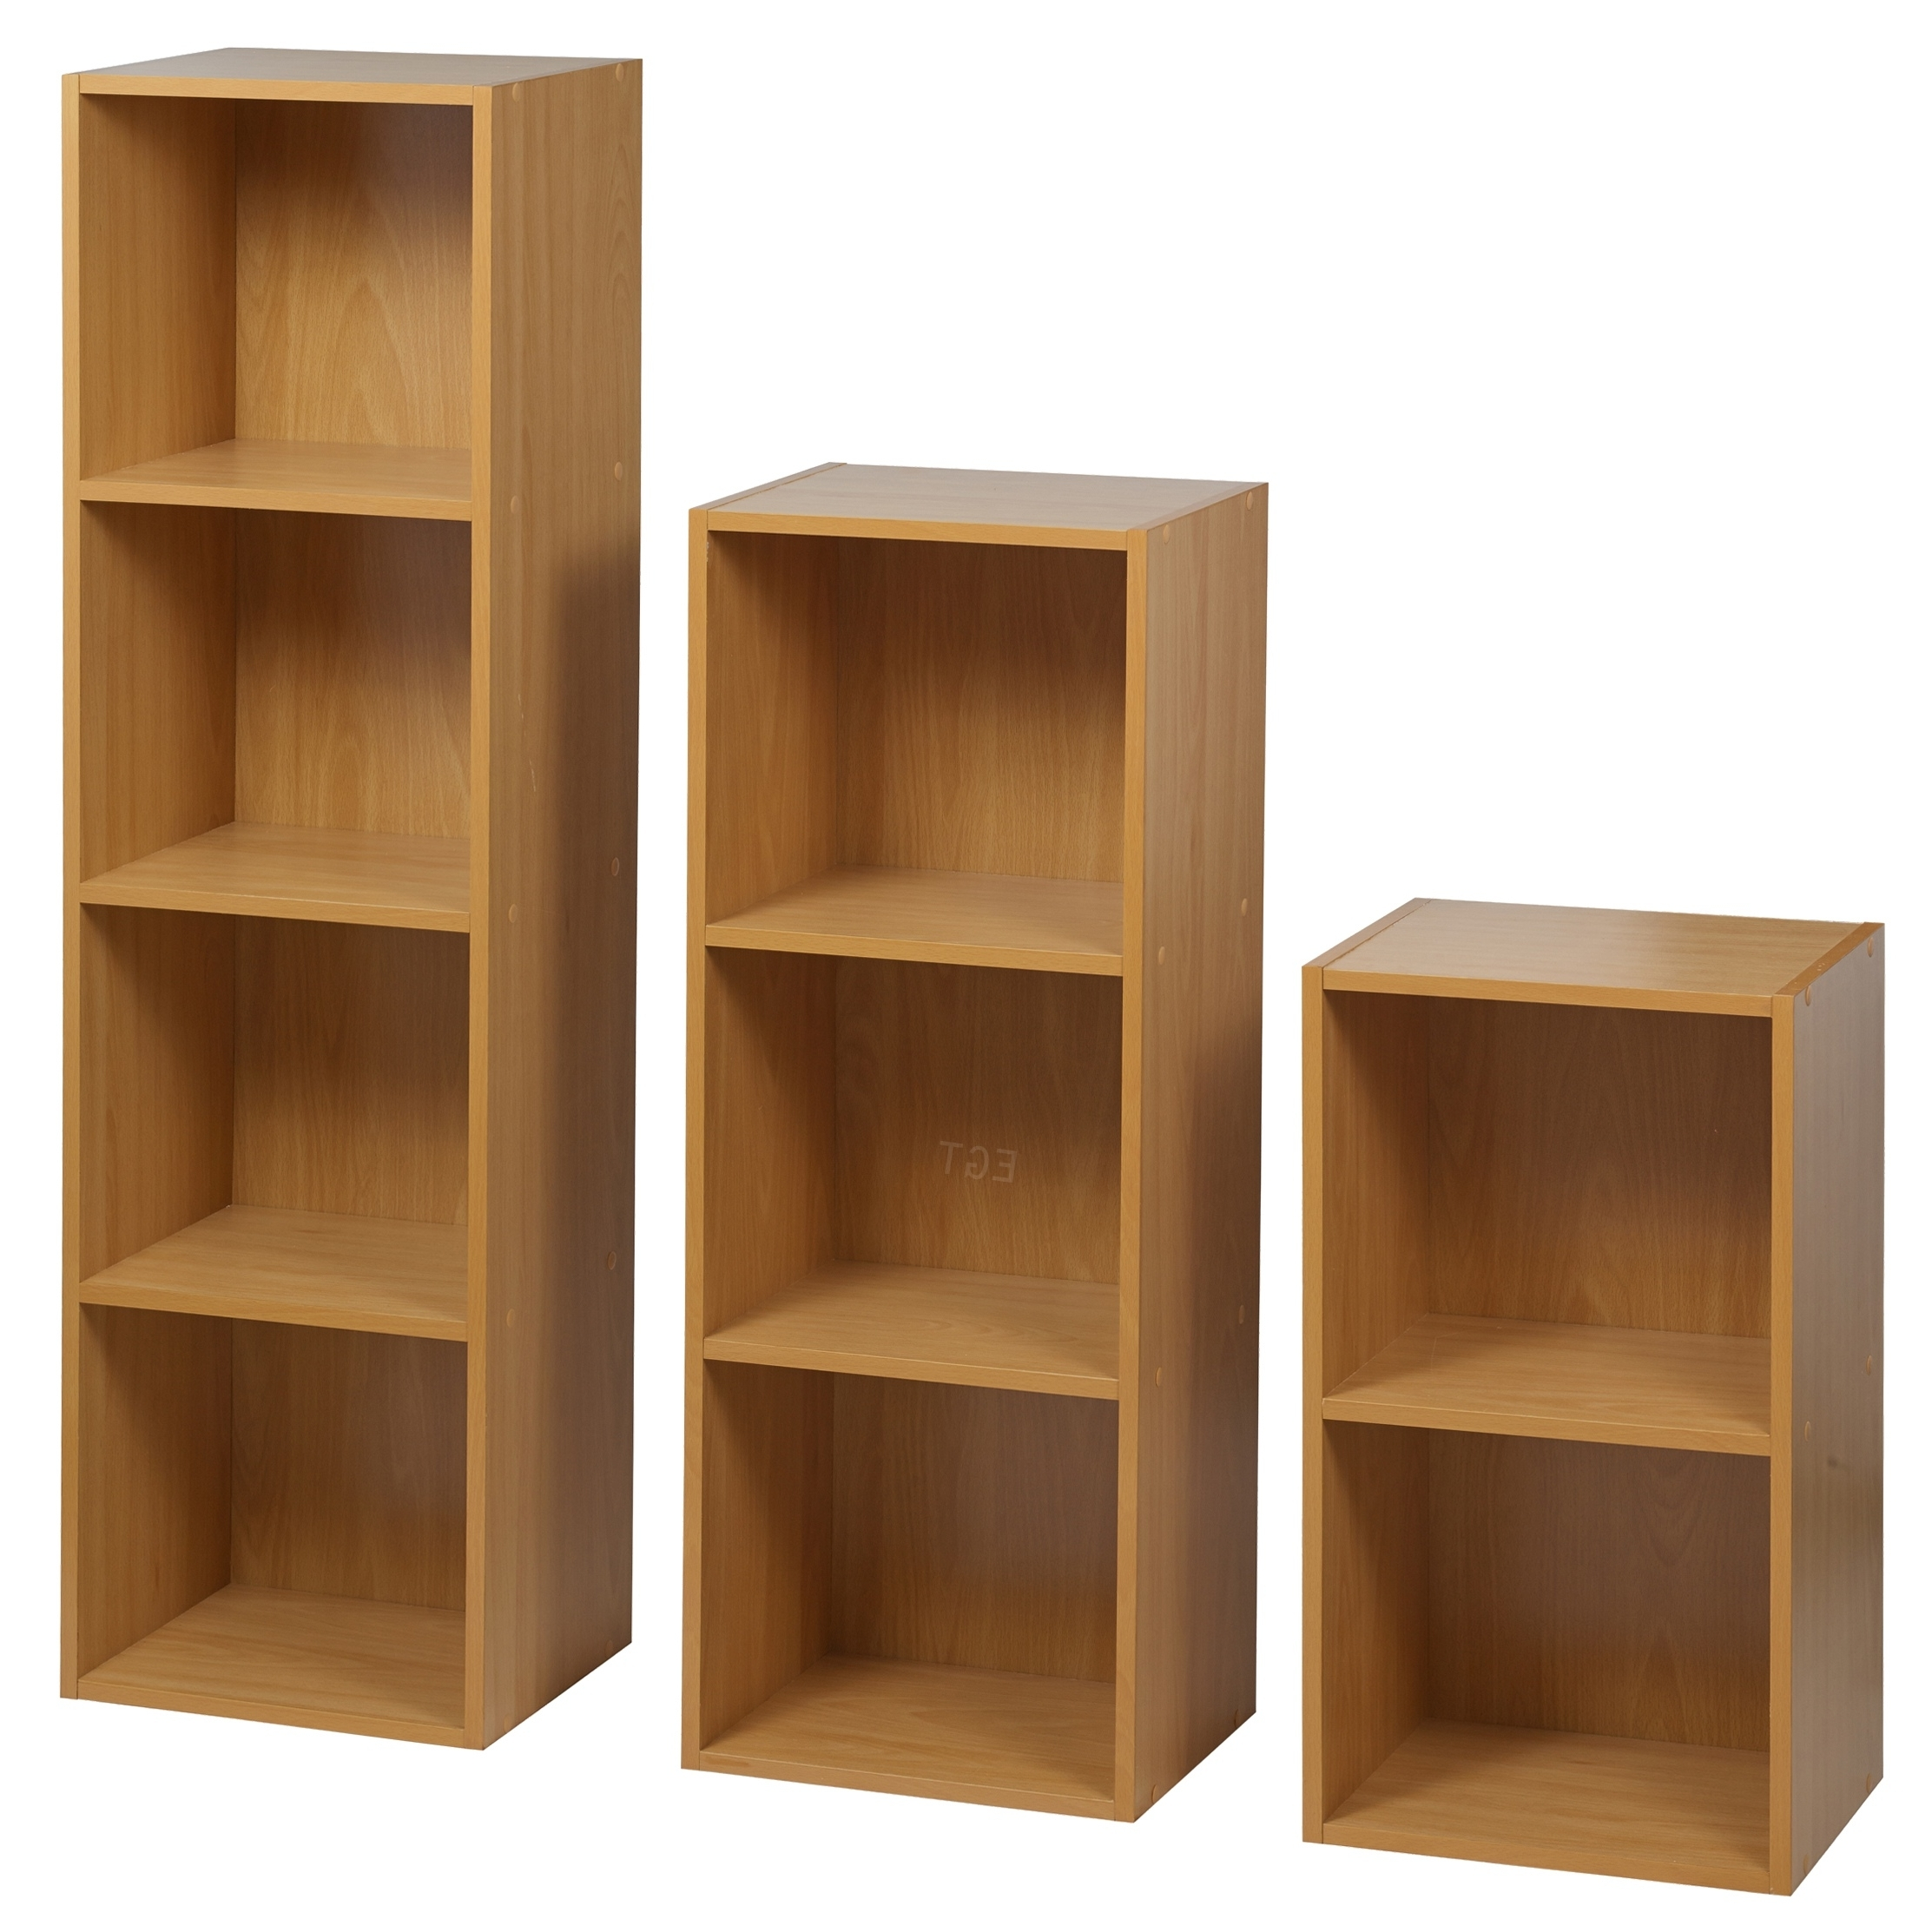 Most Current Wooden Bookcases For Furniture Home: Furniture Home Wooden Bookcase Bookshelf Awesome (View 15 of 15)